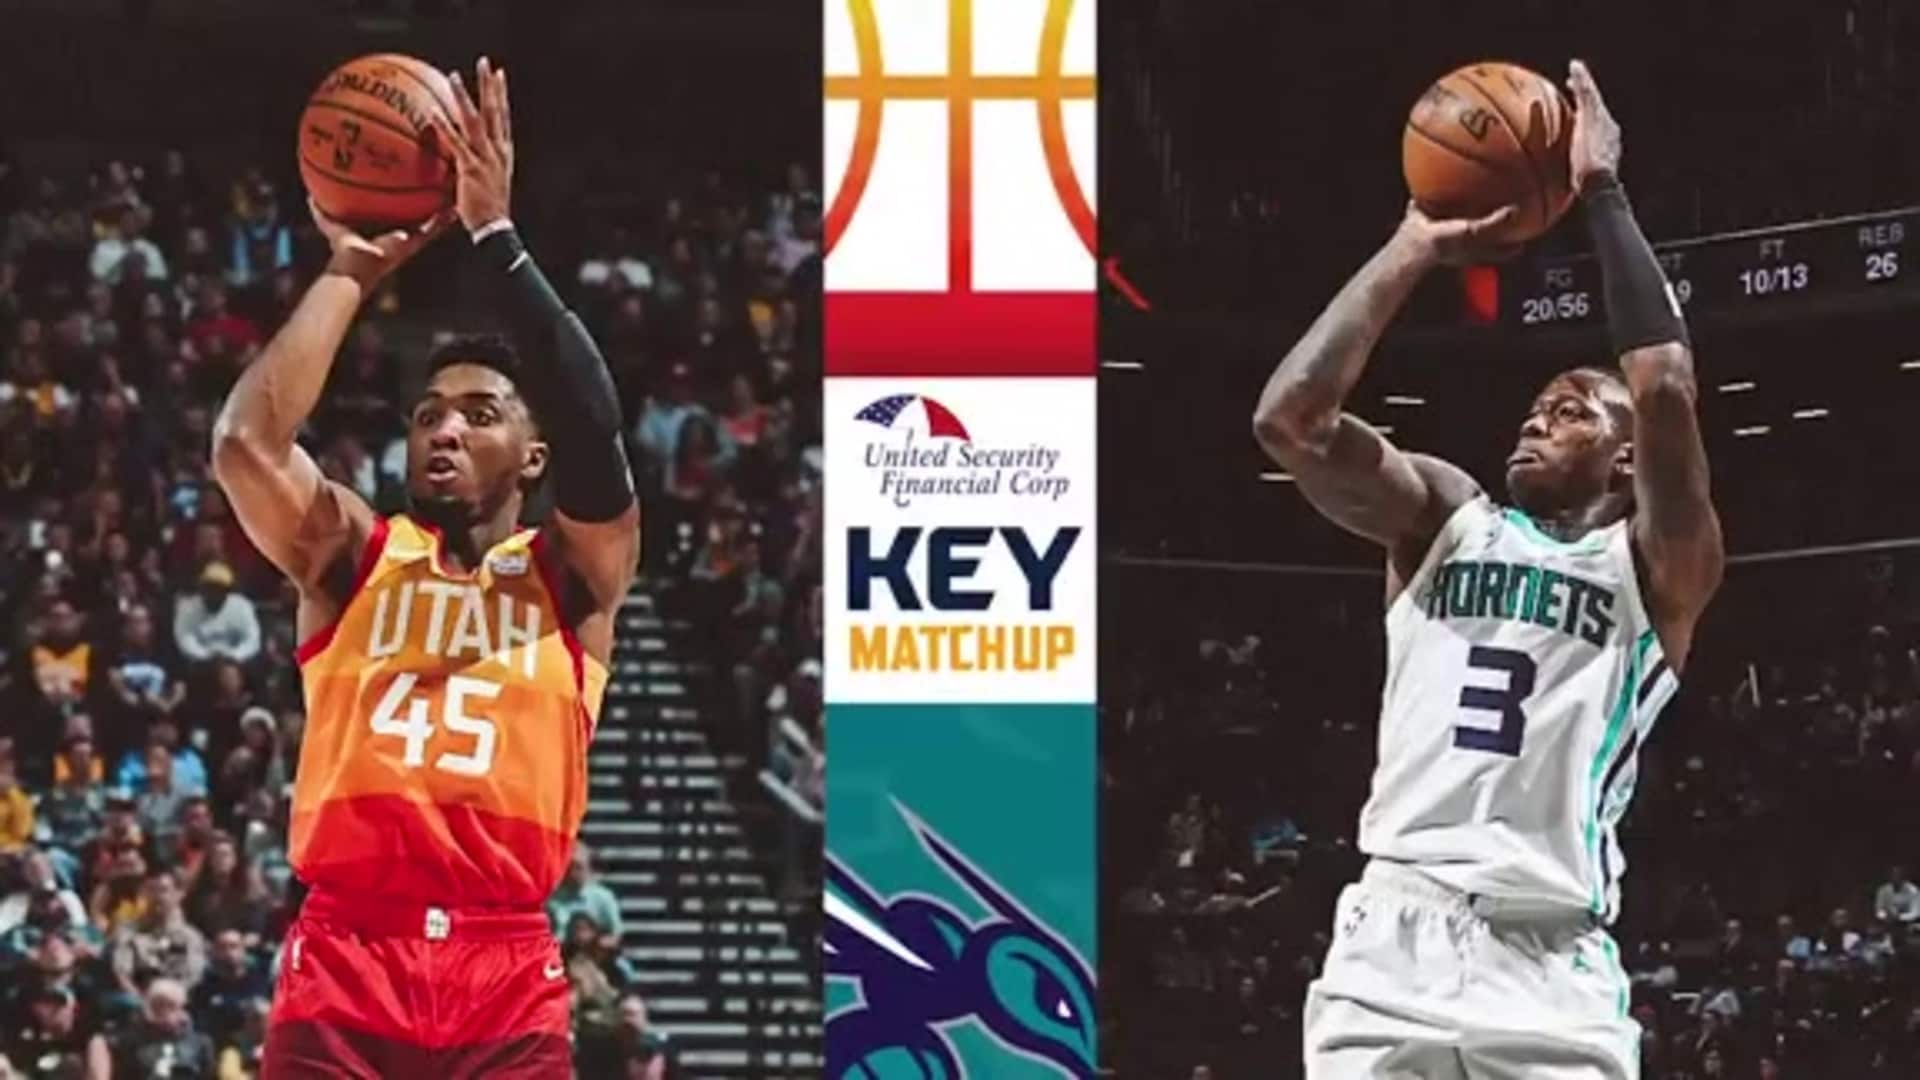 Key Matchup: Donovan Mitchell vs. Terry Rozier